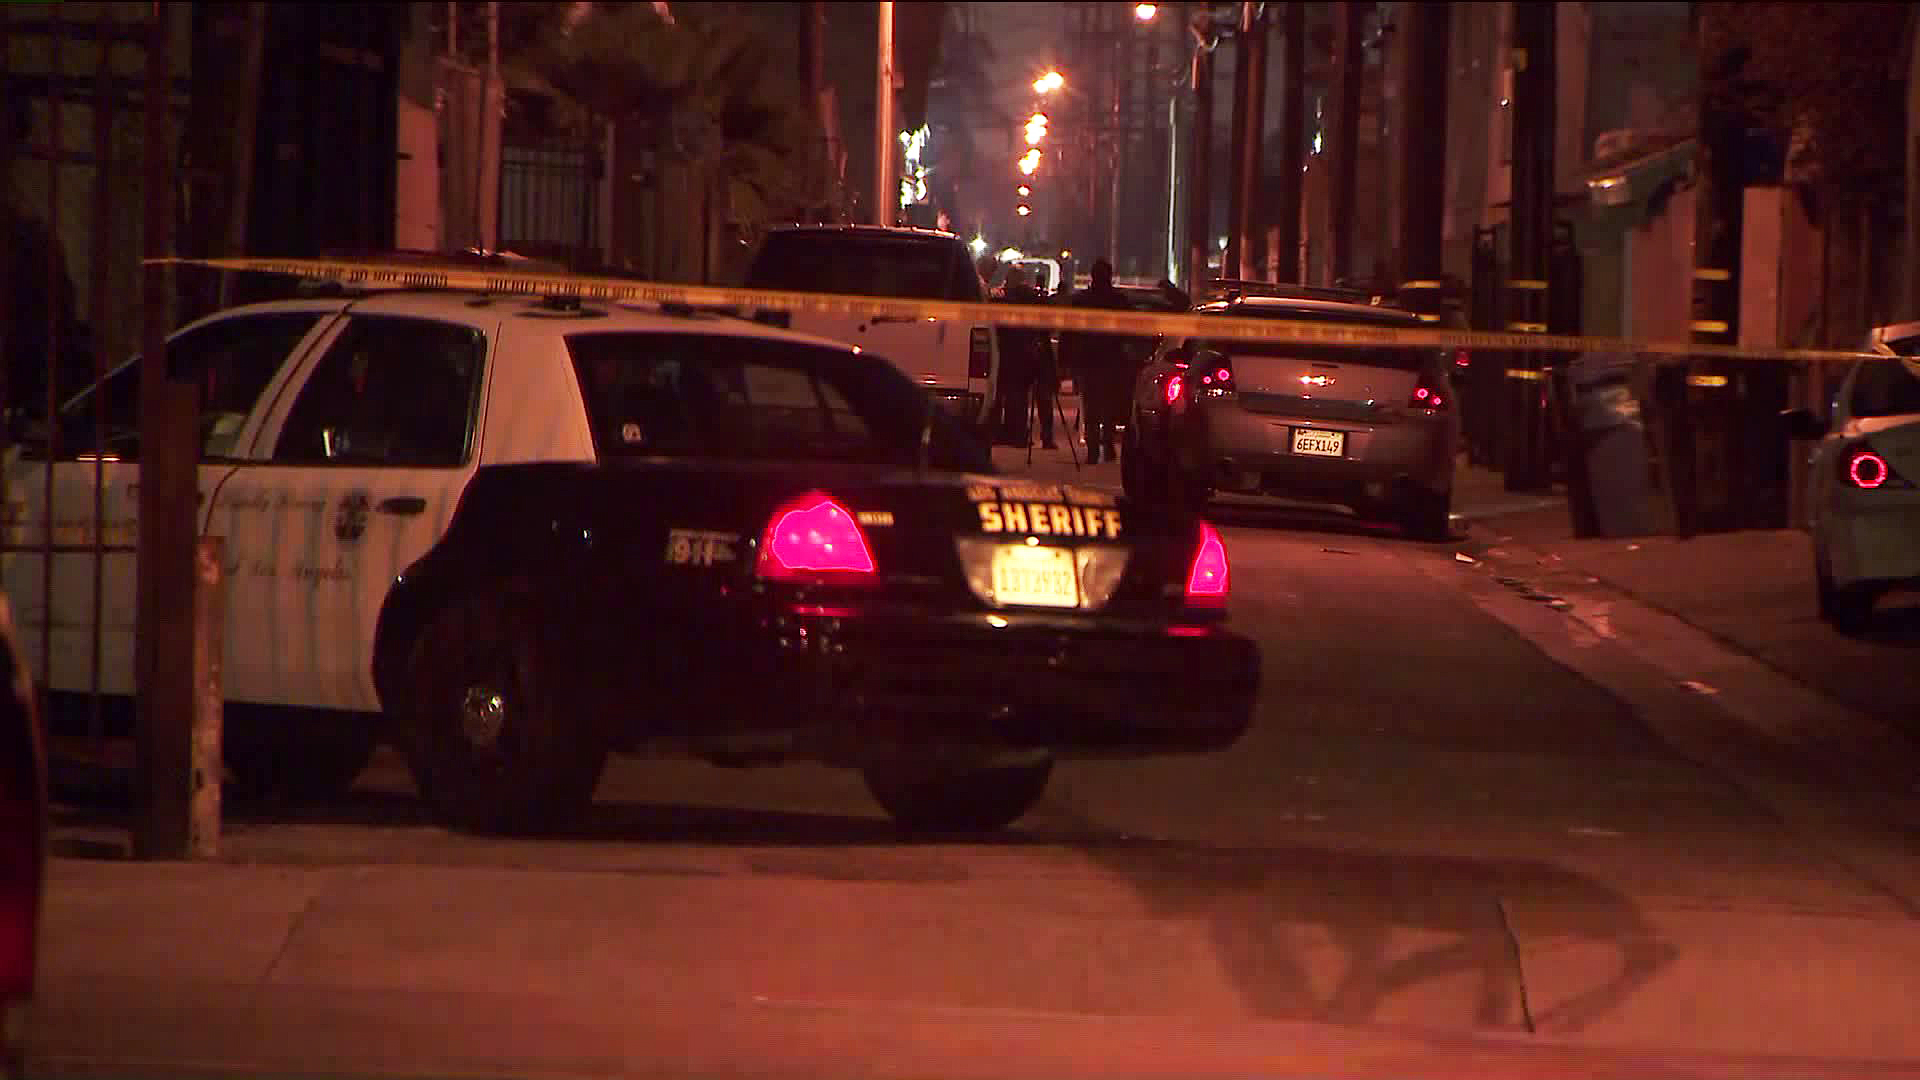 Authorities investigate a deadly shooting in East Los Angeles on March 19, 2019. (Credit: KTLA)